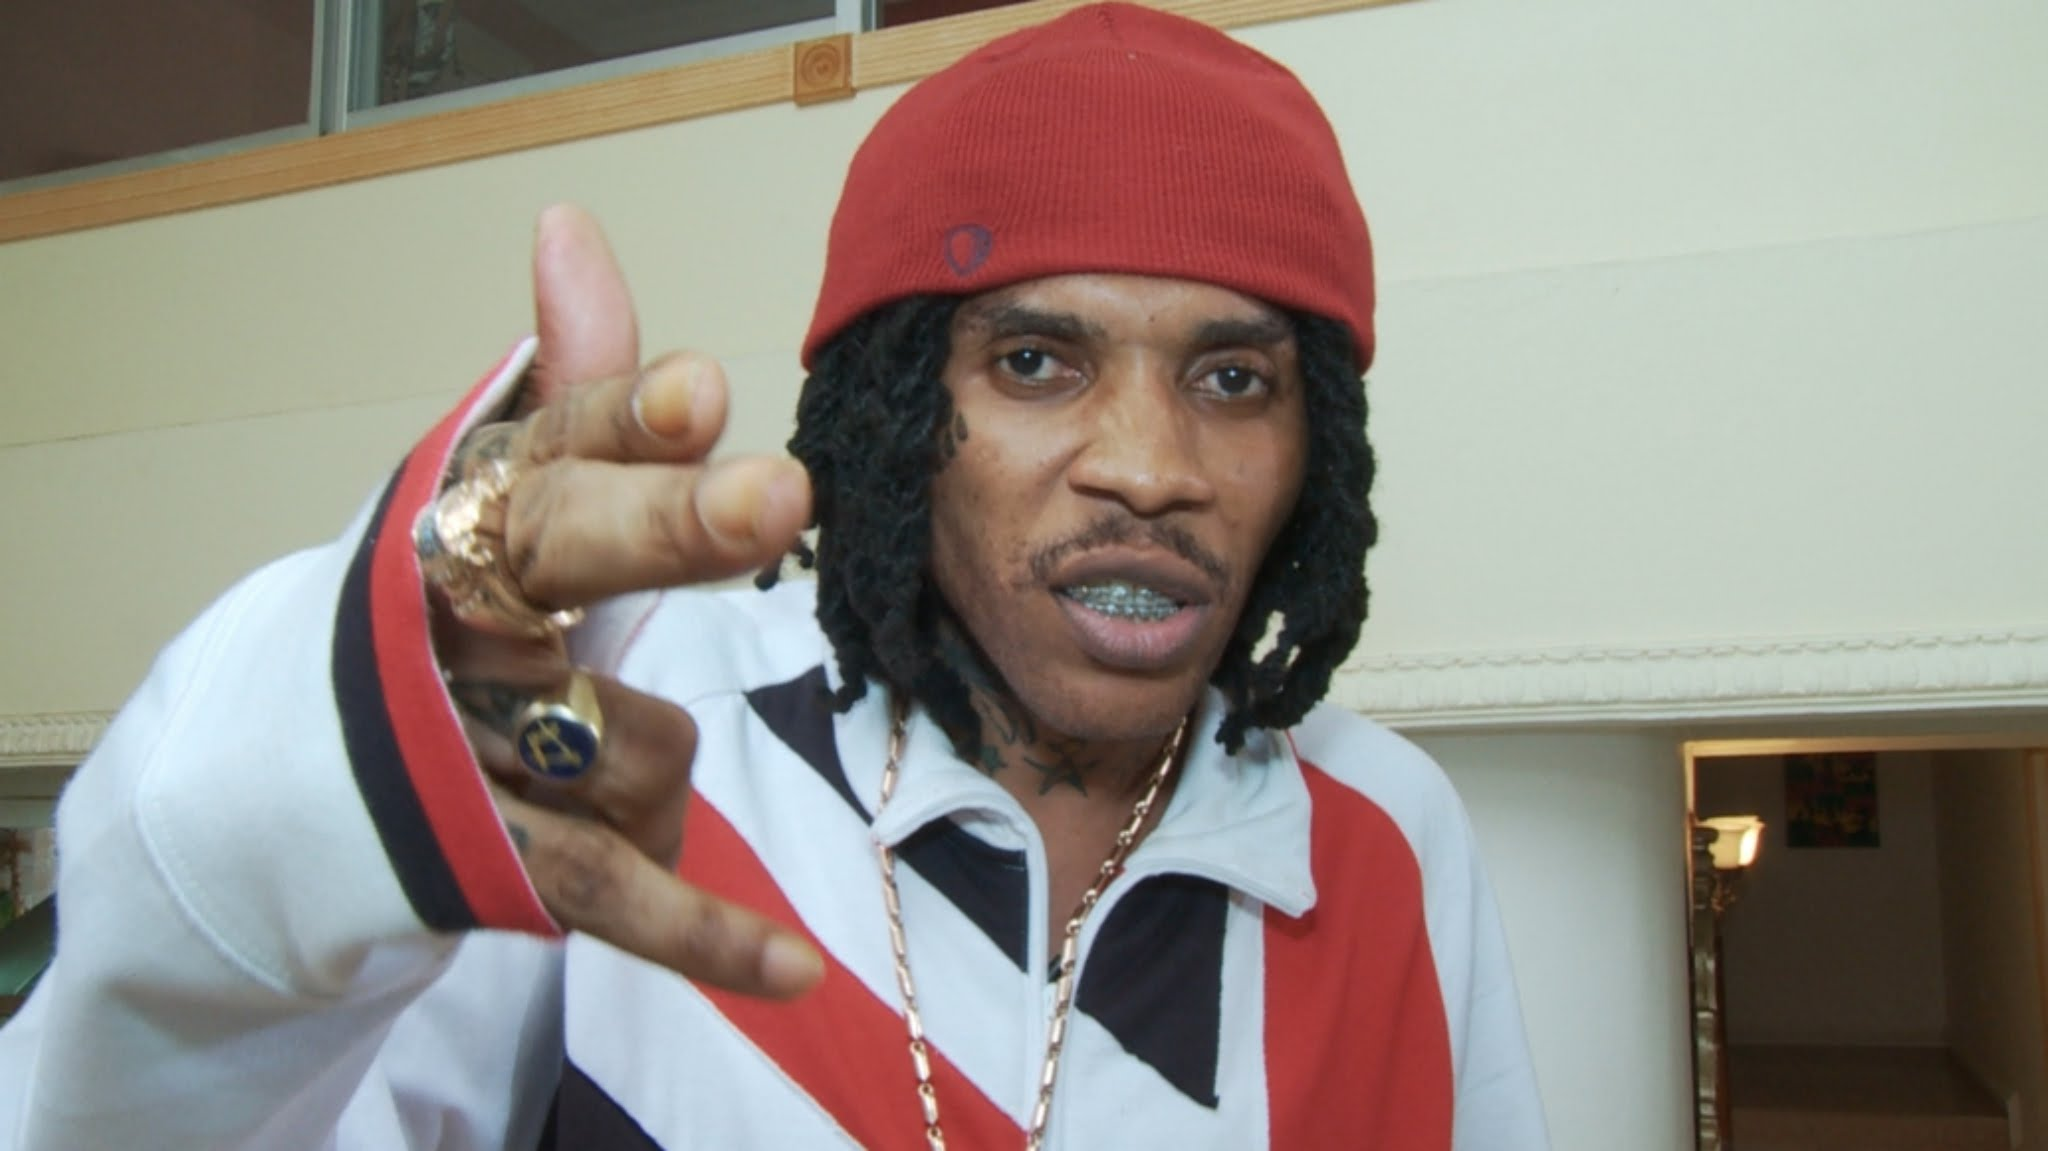 Vybz Kartel drops new music video 'Who Trouble Them'